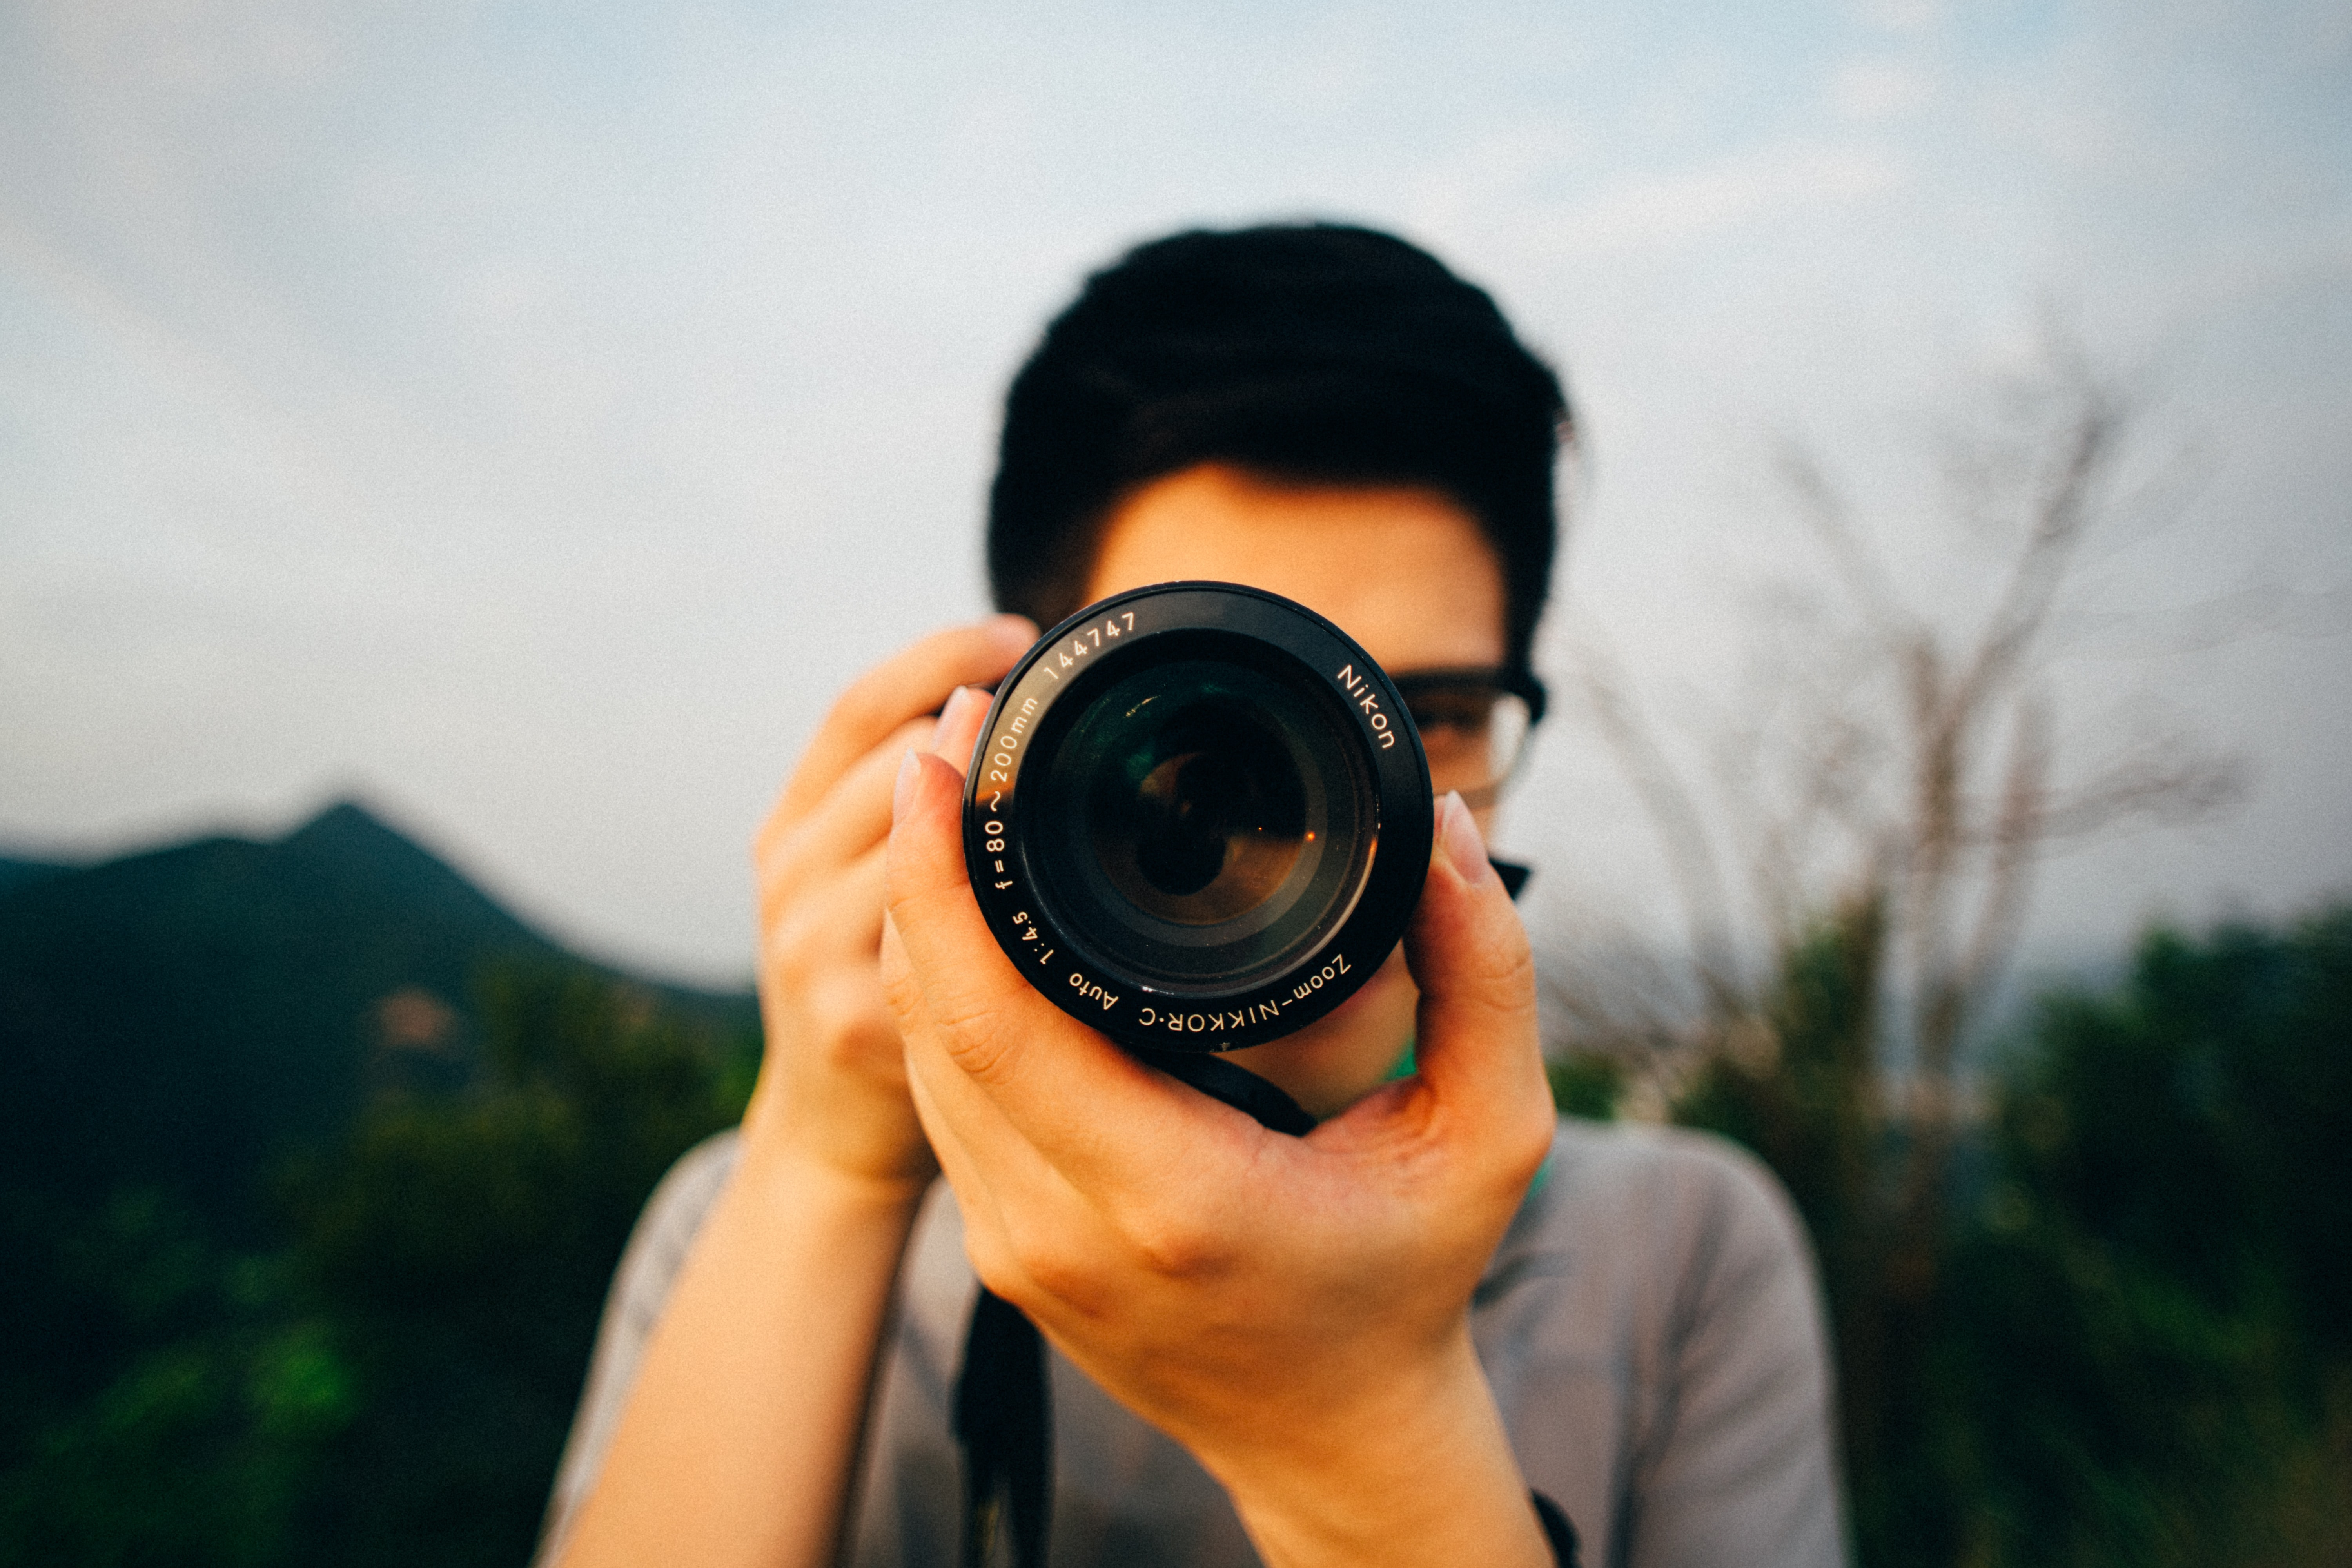 Macro of a man with glasses focusing a camera lens at the viewer in front of an outdoor scene